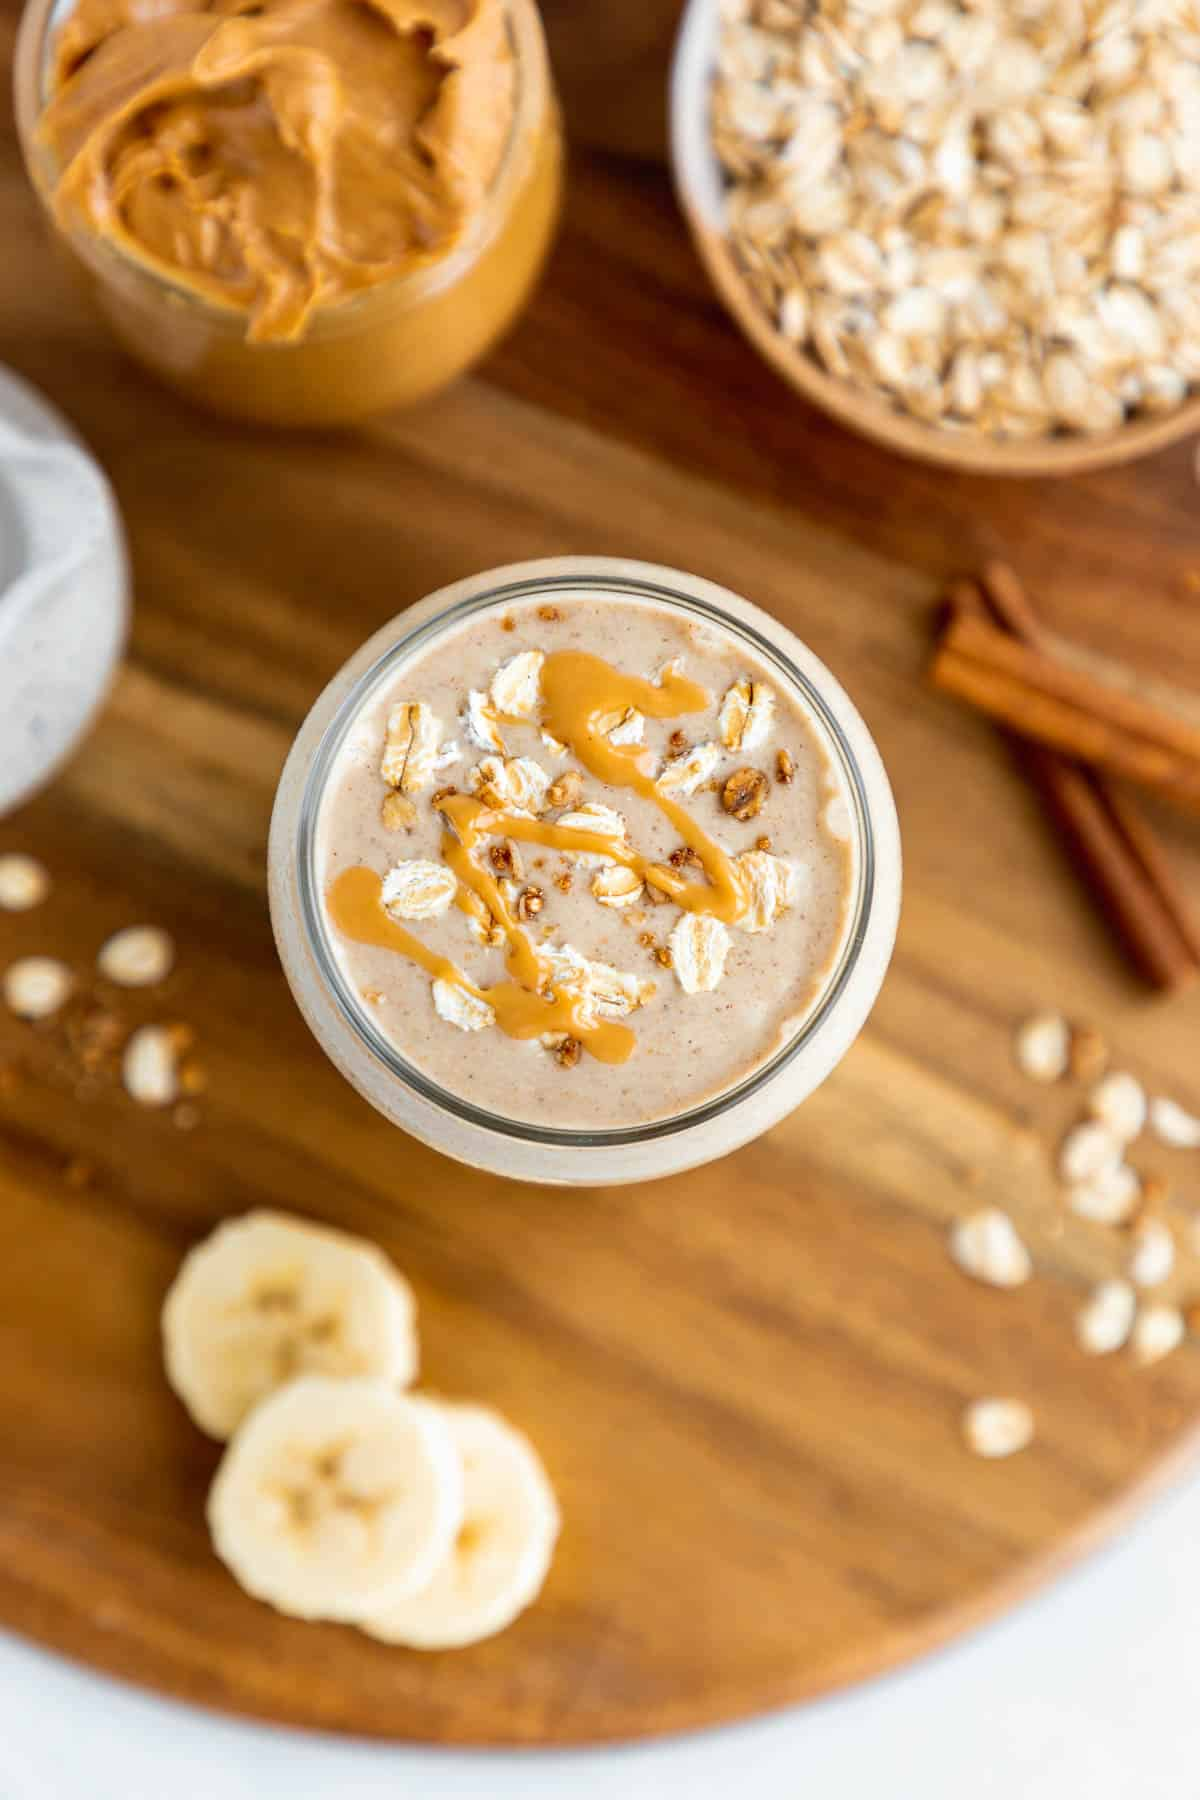 overhead photo of a peanut butter oatmeal smoothie inside a glass, surrounded by sliced banana, rolled oats, and oat milk